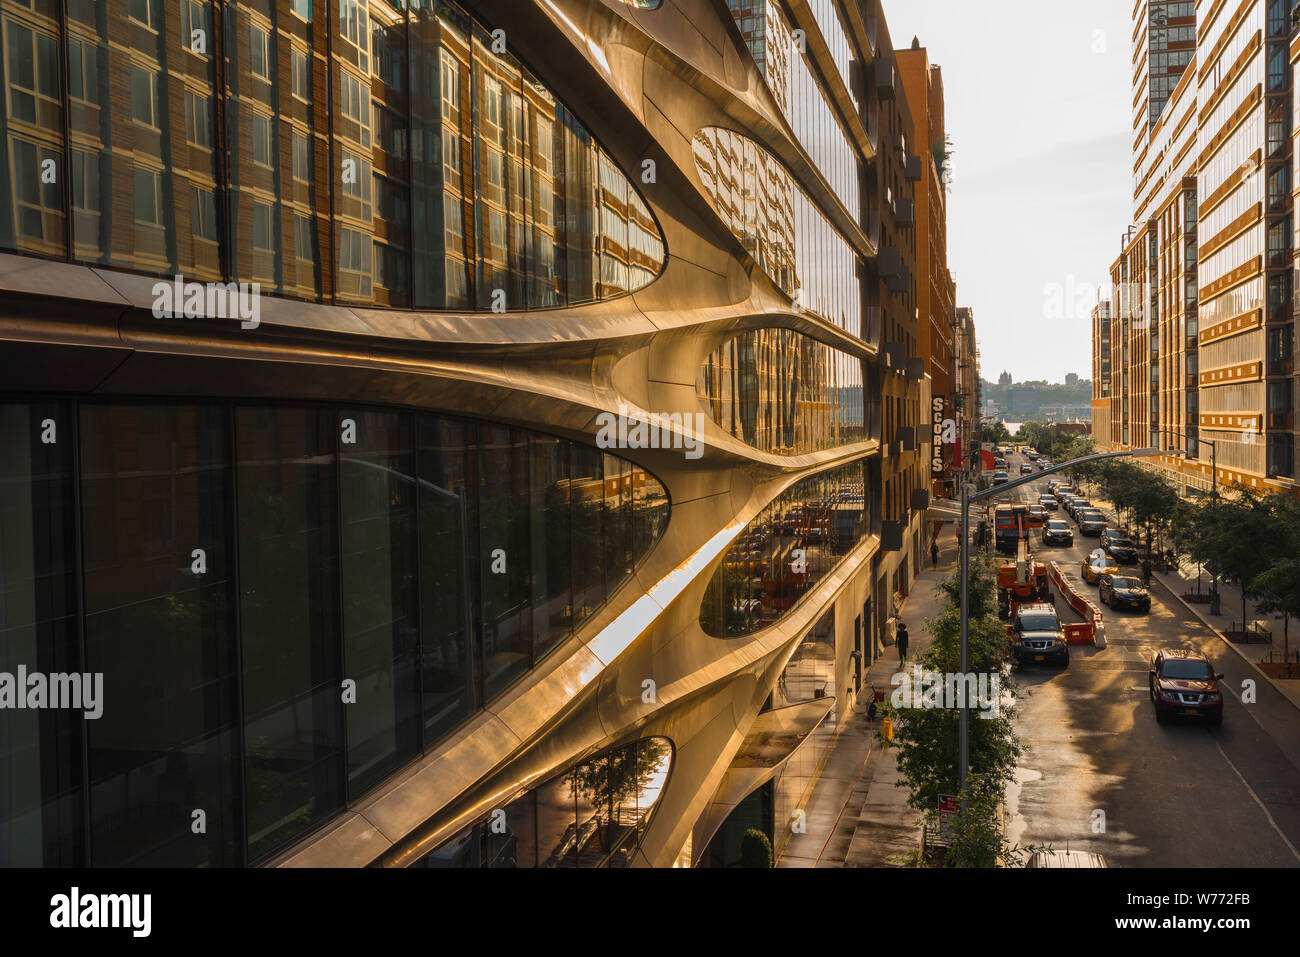 Manhattan architecture, view at sunset along West 28th Street in Chelsea with facade of 520 West 28th Street building by Zaha Hadid on left, New York. Stock Photo